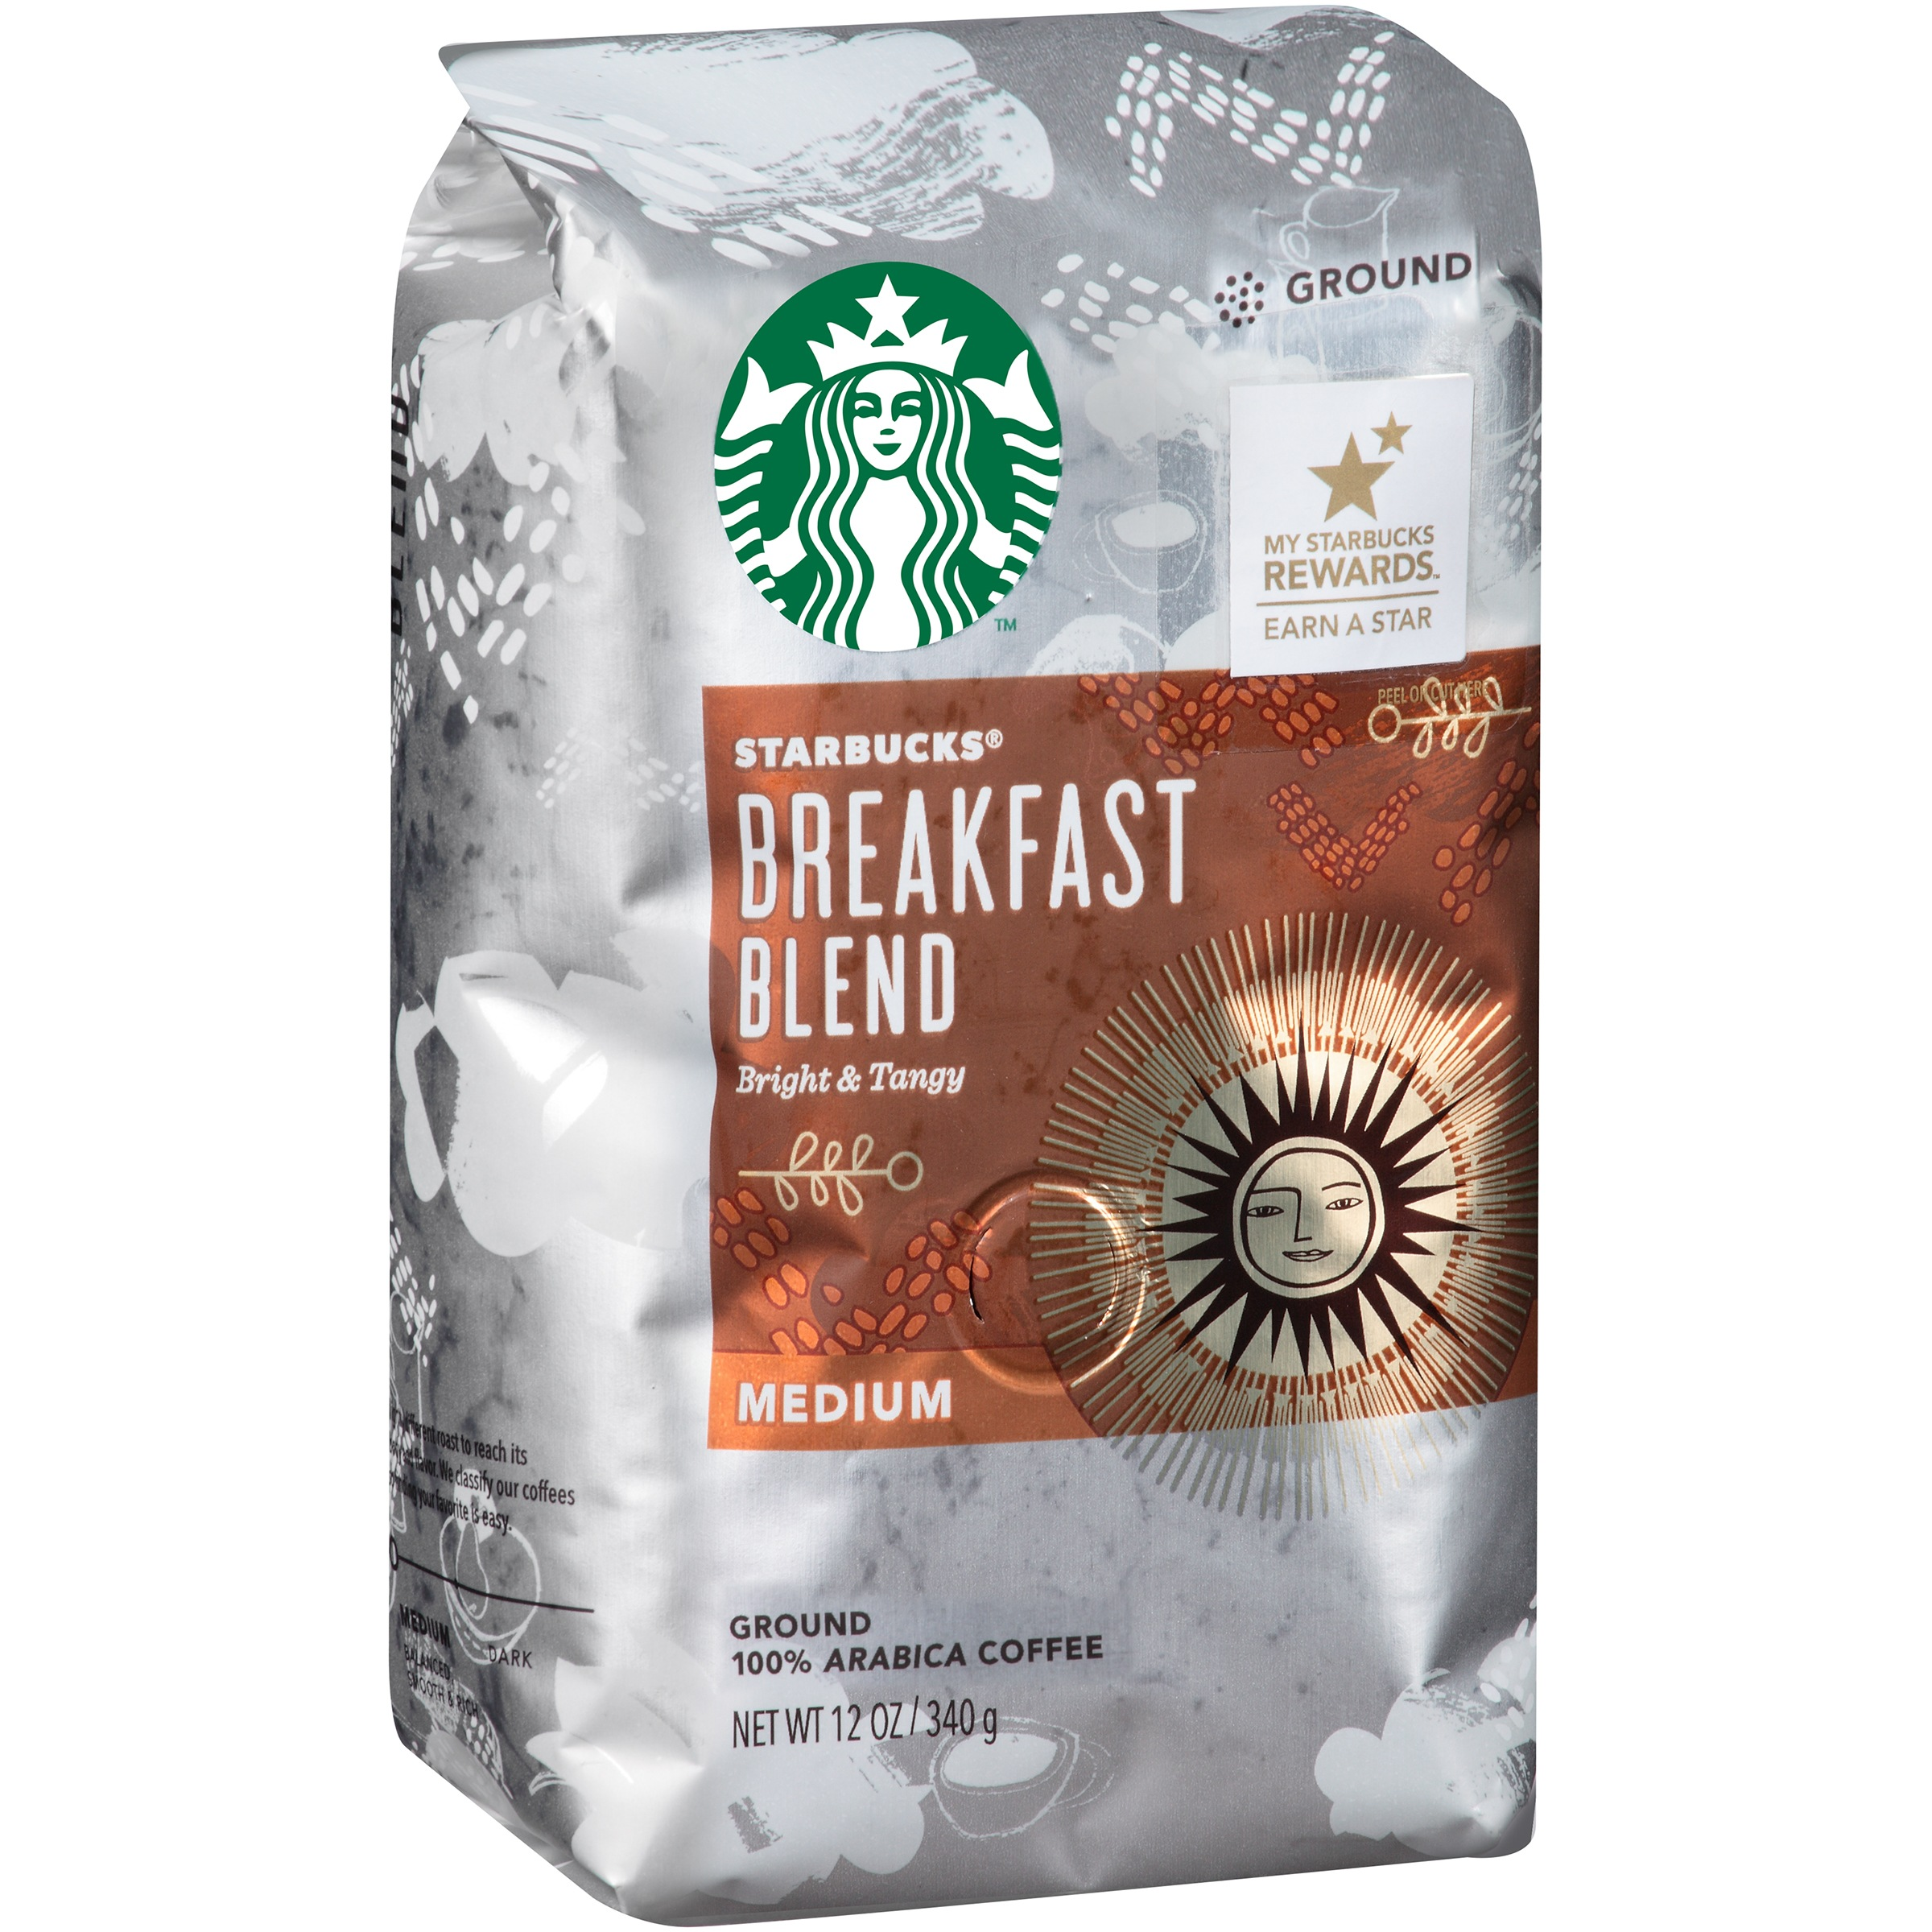 Starbucks® Breakfast Blend Medium Ground Coffee 12 oz. Bag